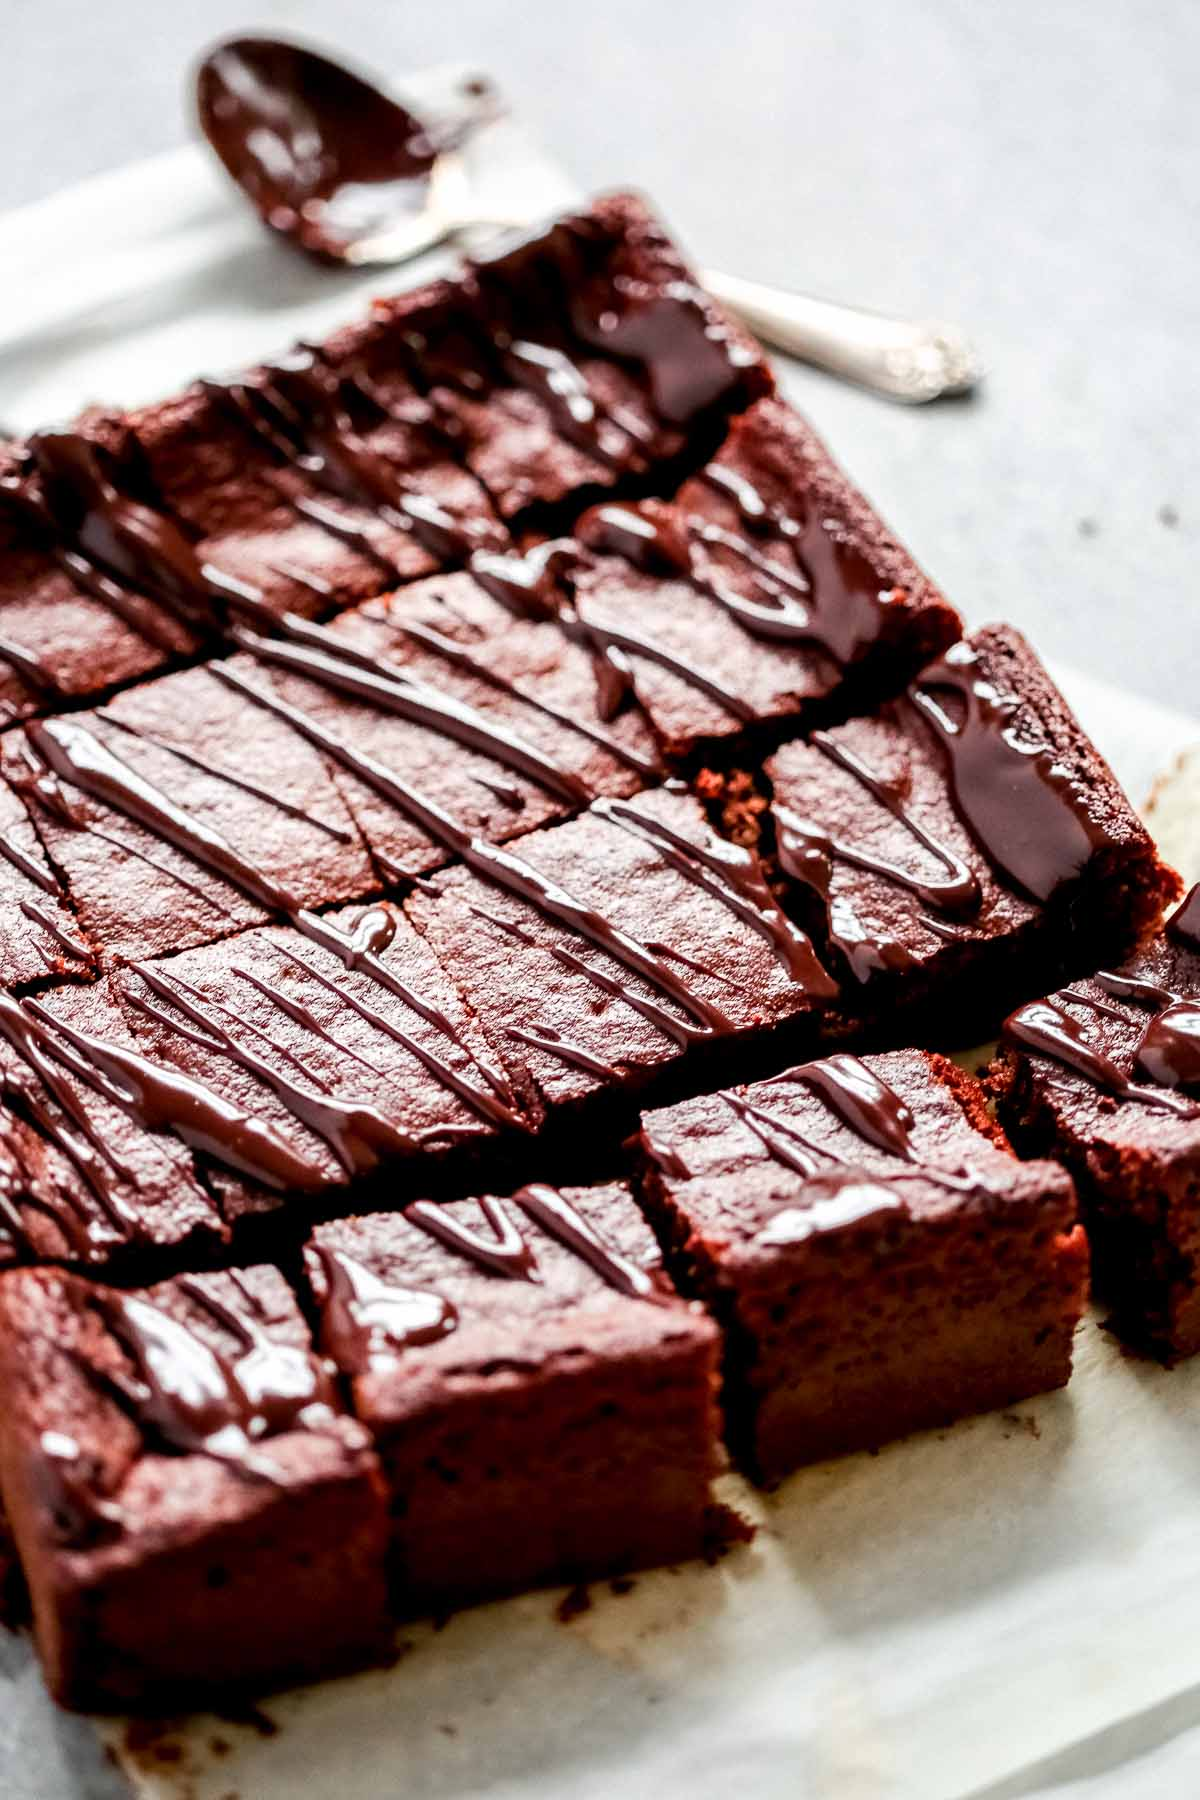 low-carb brownies cut into squares